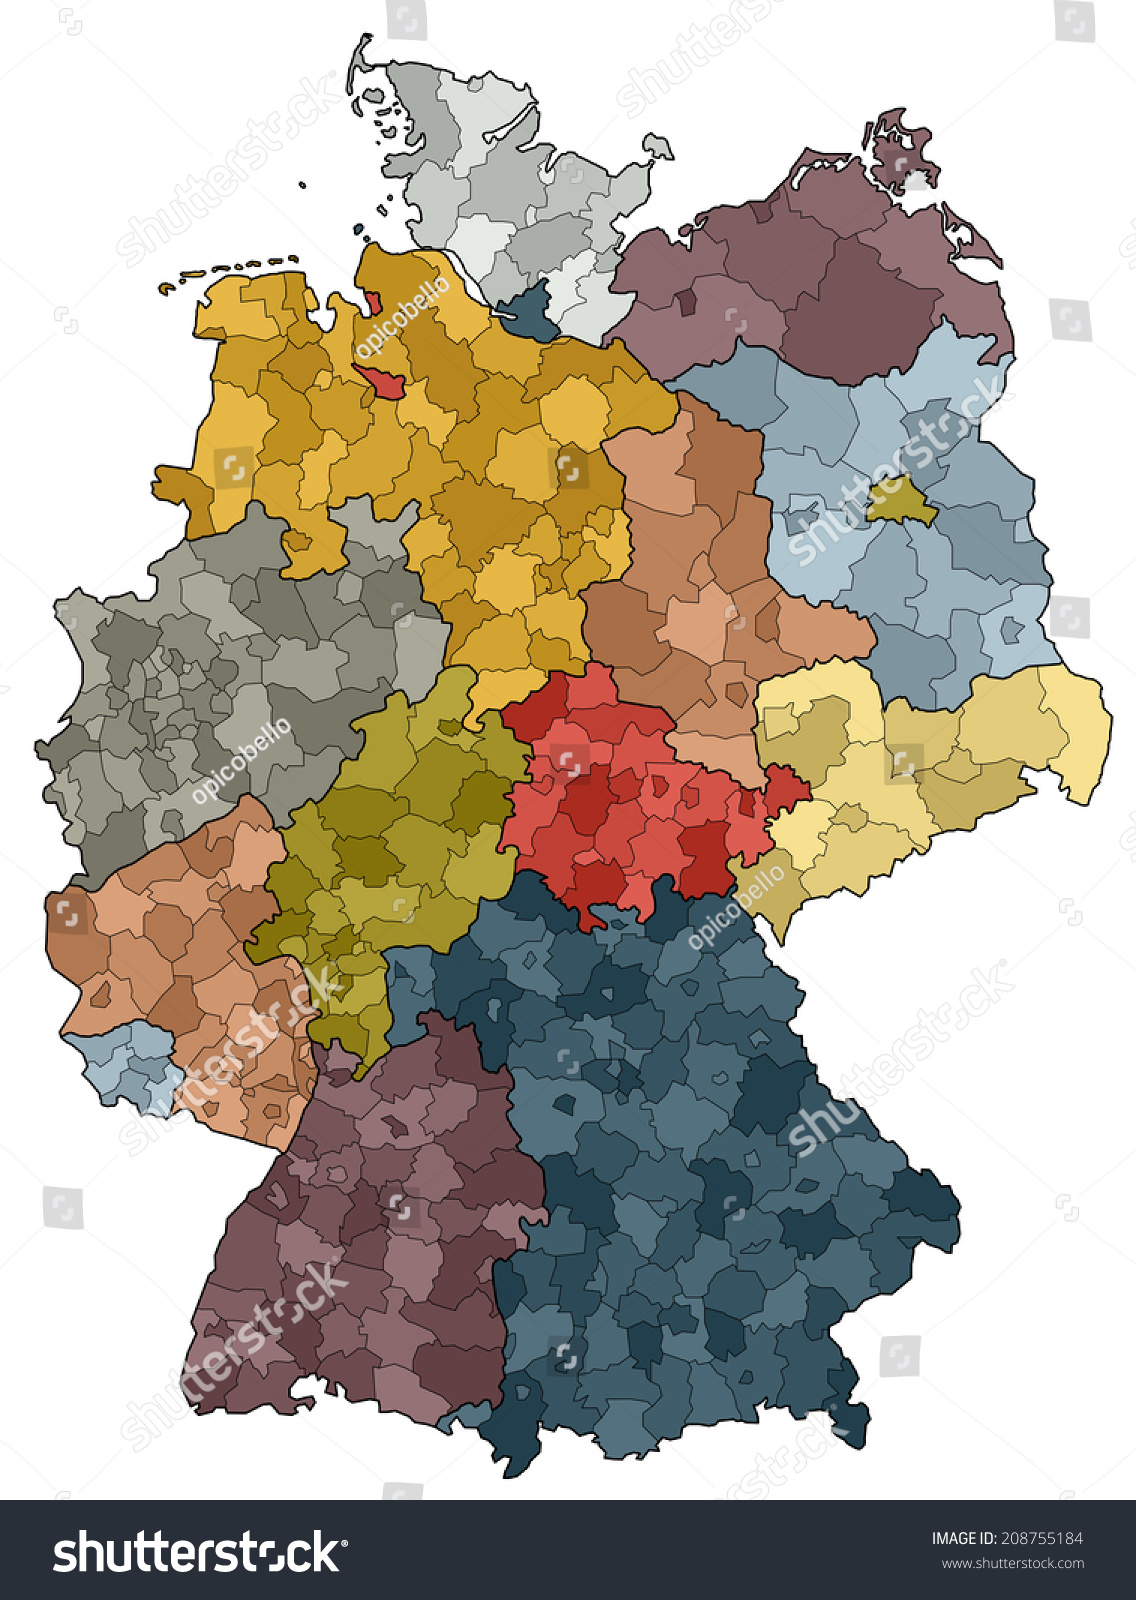 Germany Map Provinces Districts Stock Vector Shutterstock - Germany map provinces